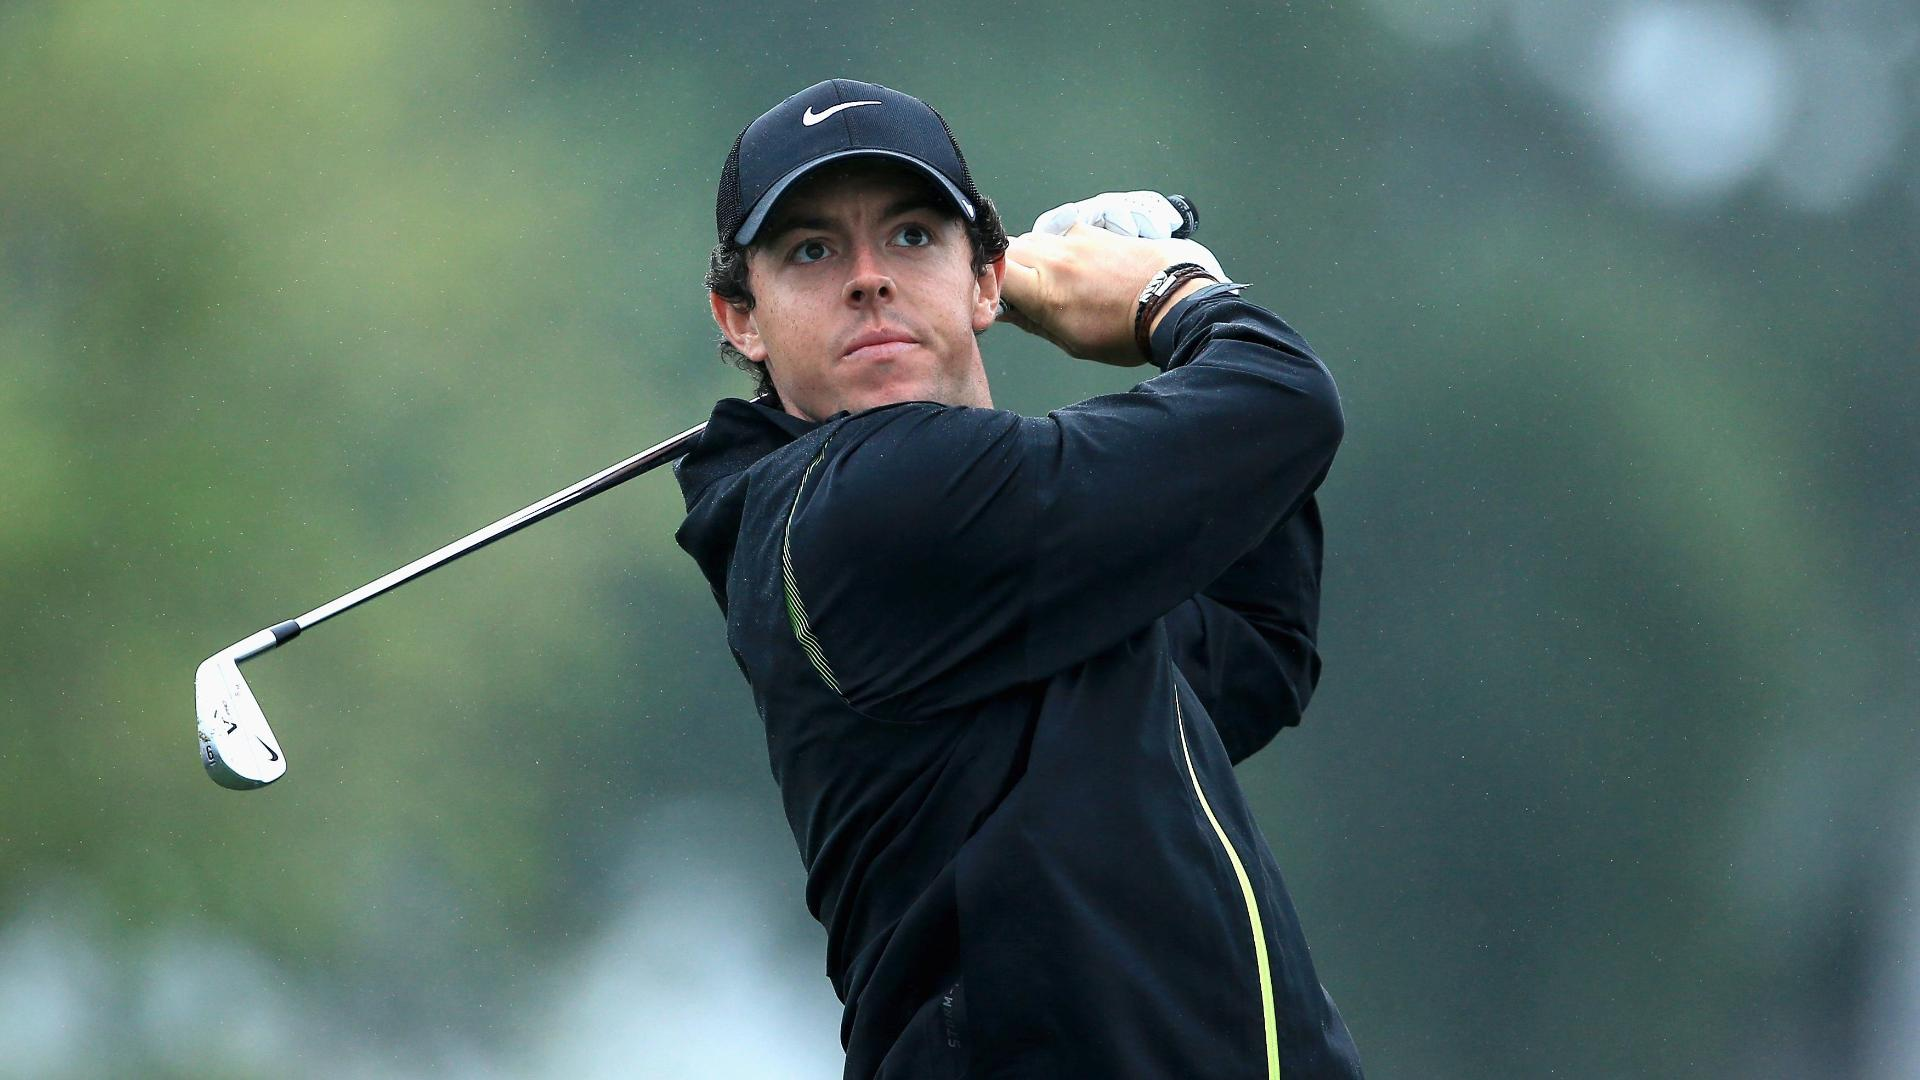 http://a.espncdn.com/media/motion/2015/0227/dm_150227_golf_mcilroy_sound1356/dm_150227_golf_mcilroy_sound1356.jpg